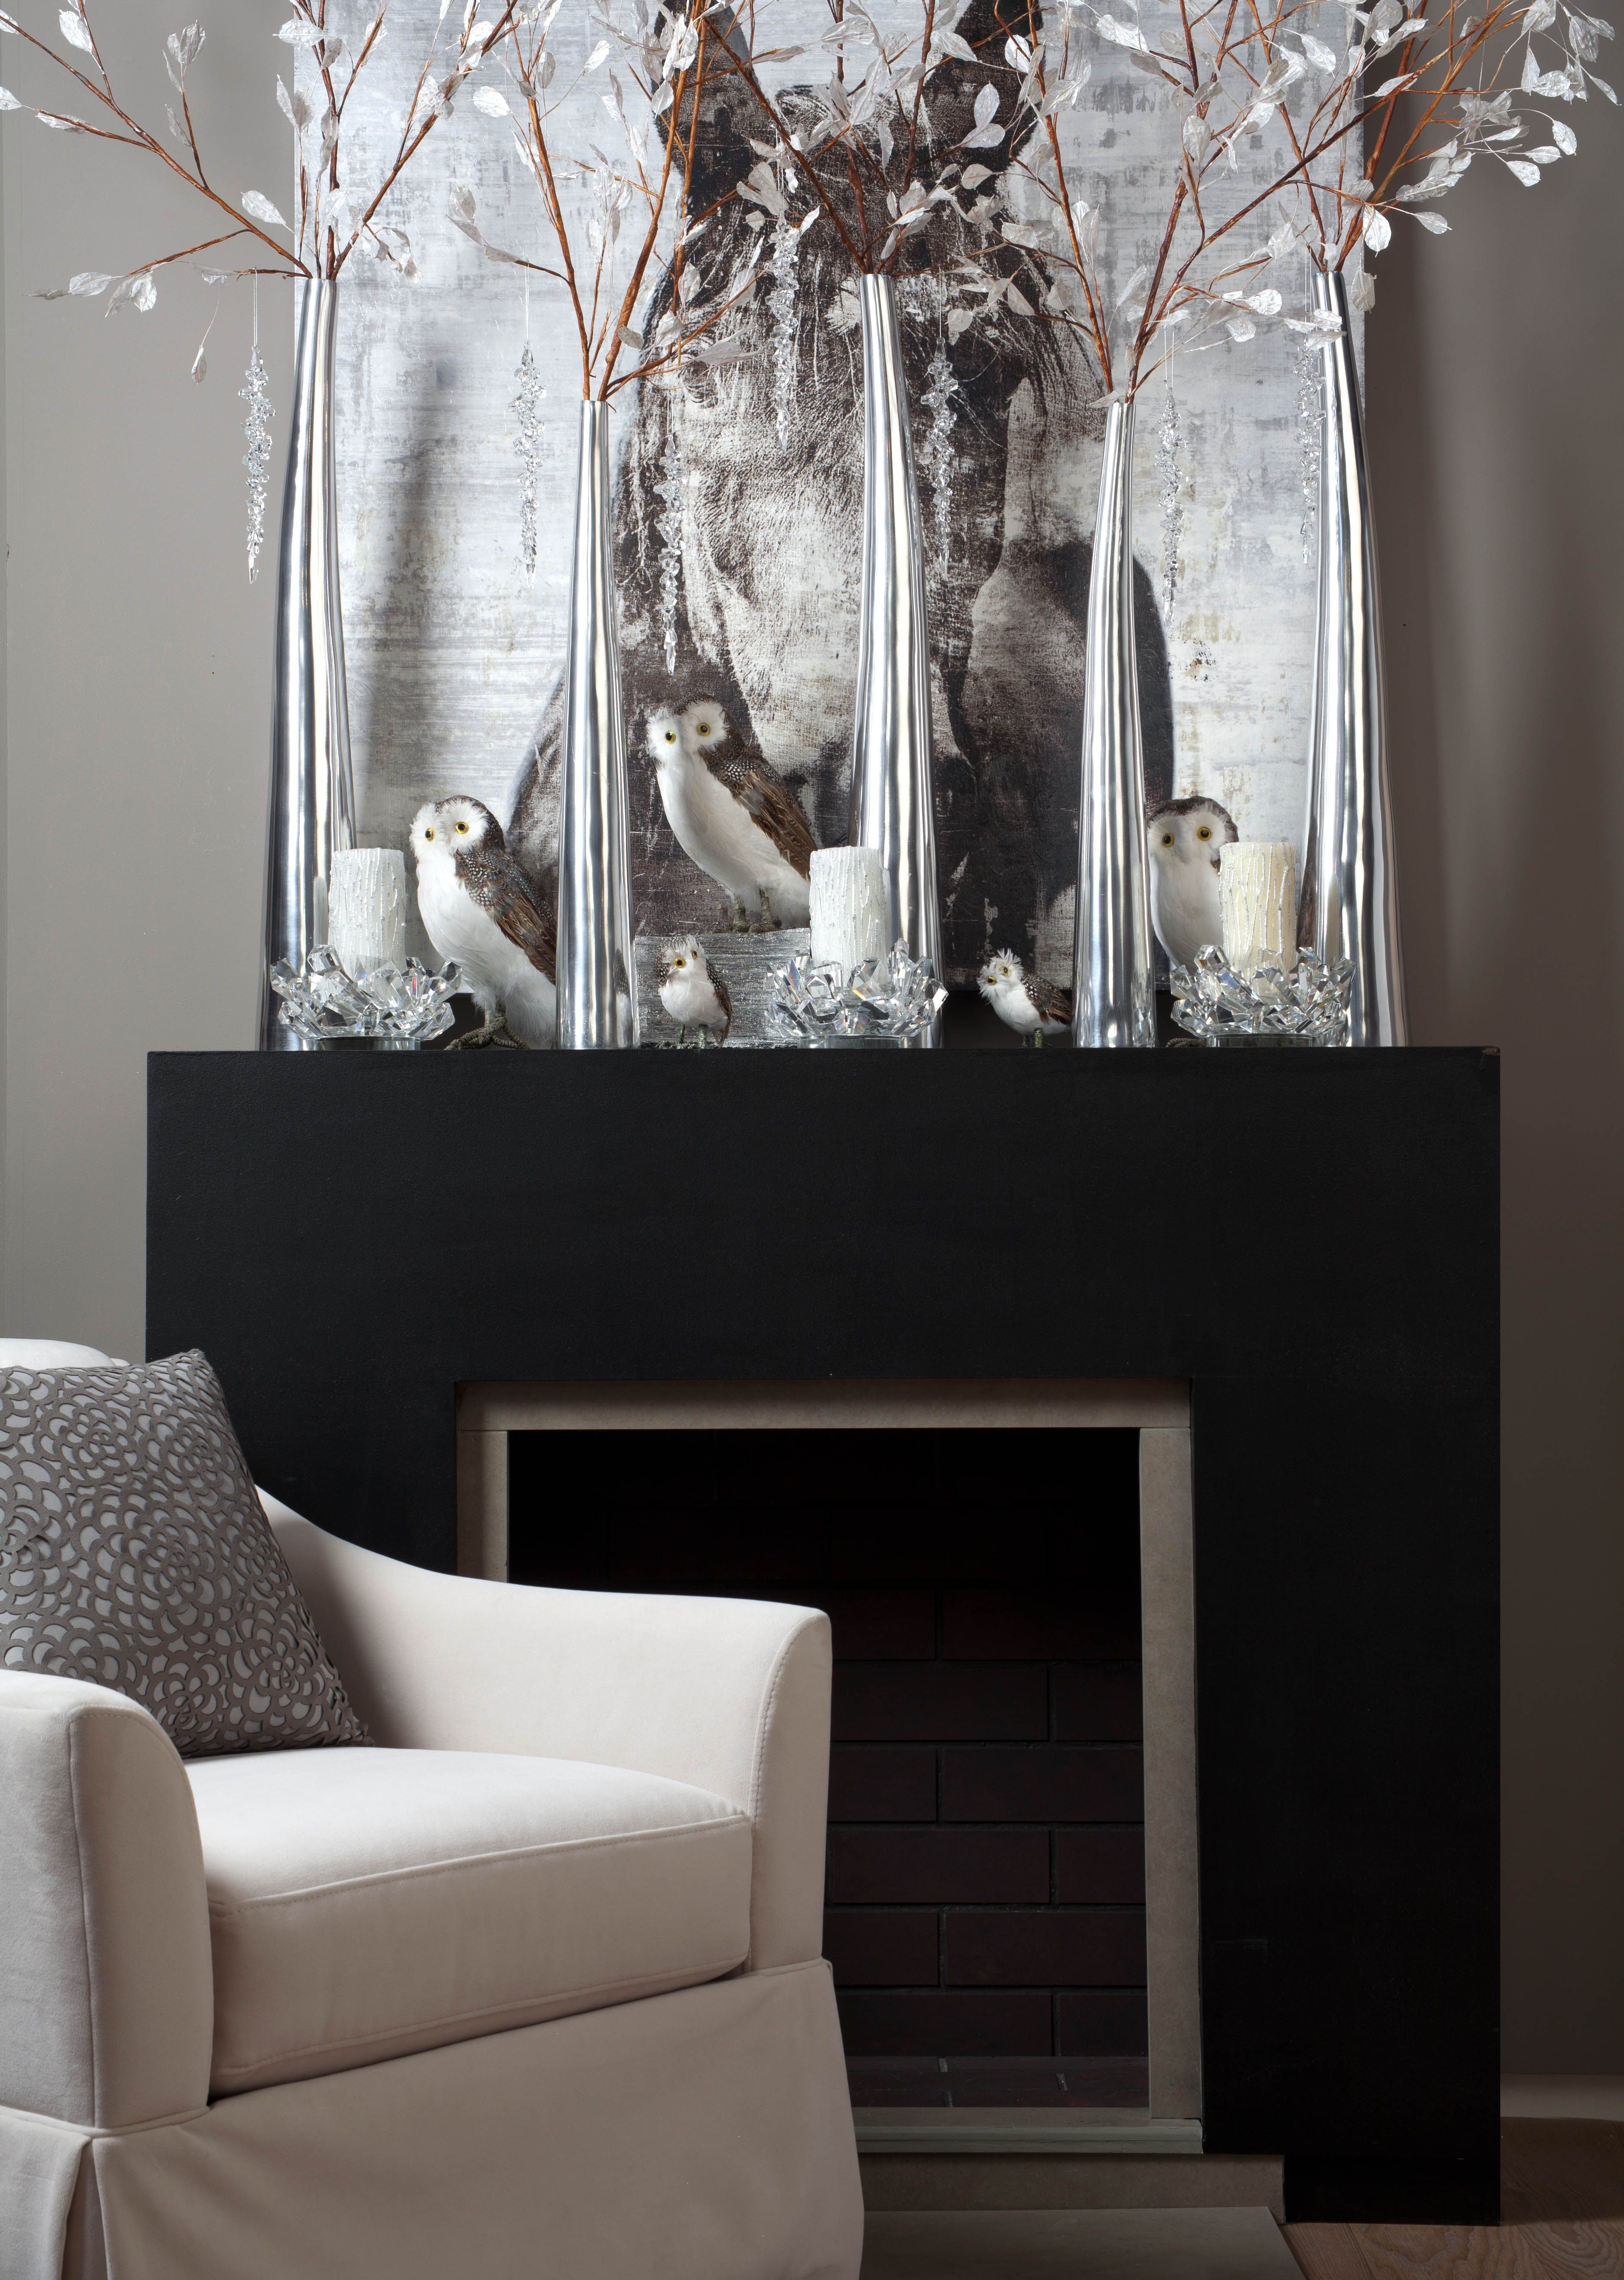 A tundrainspired mantle with wildlife embellishments and